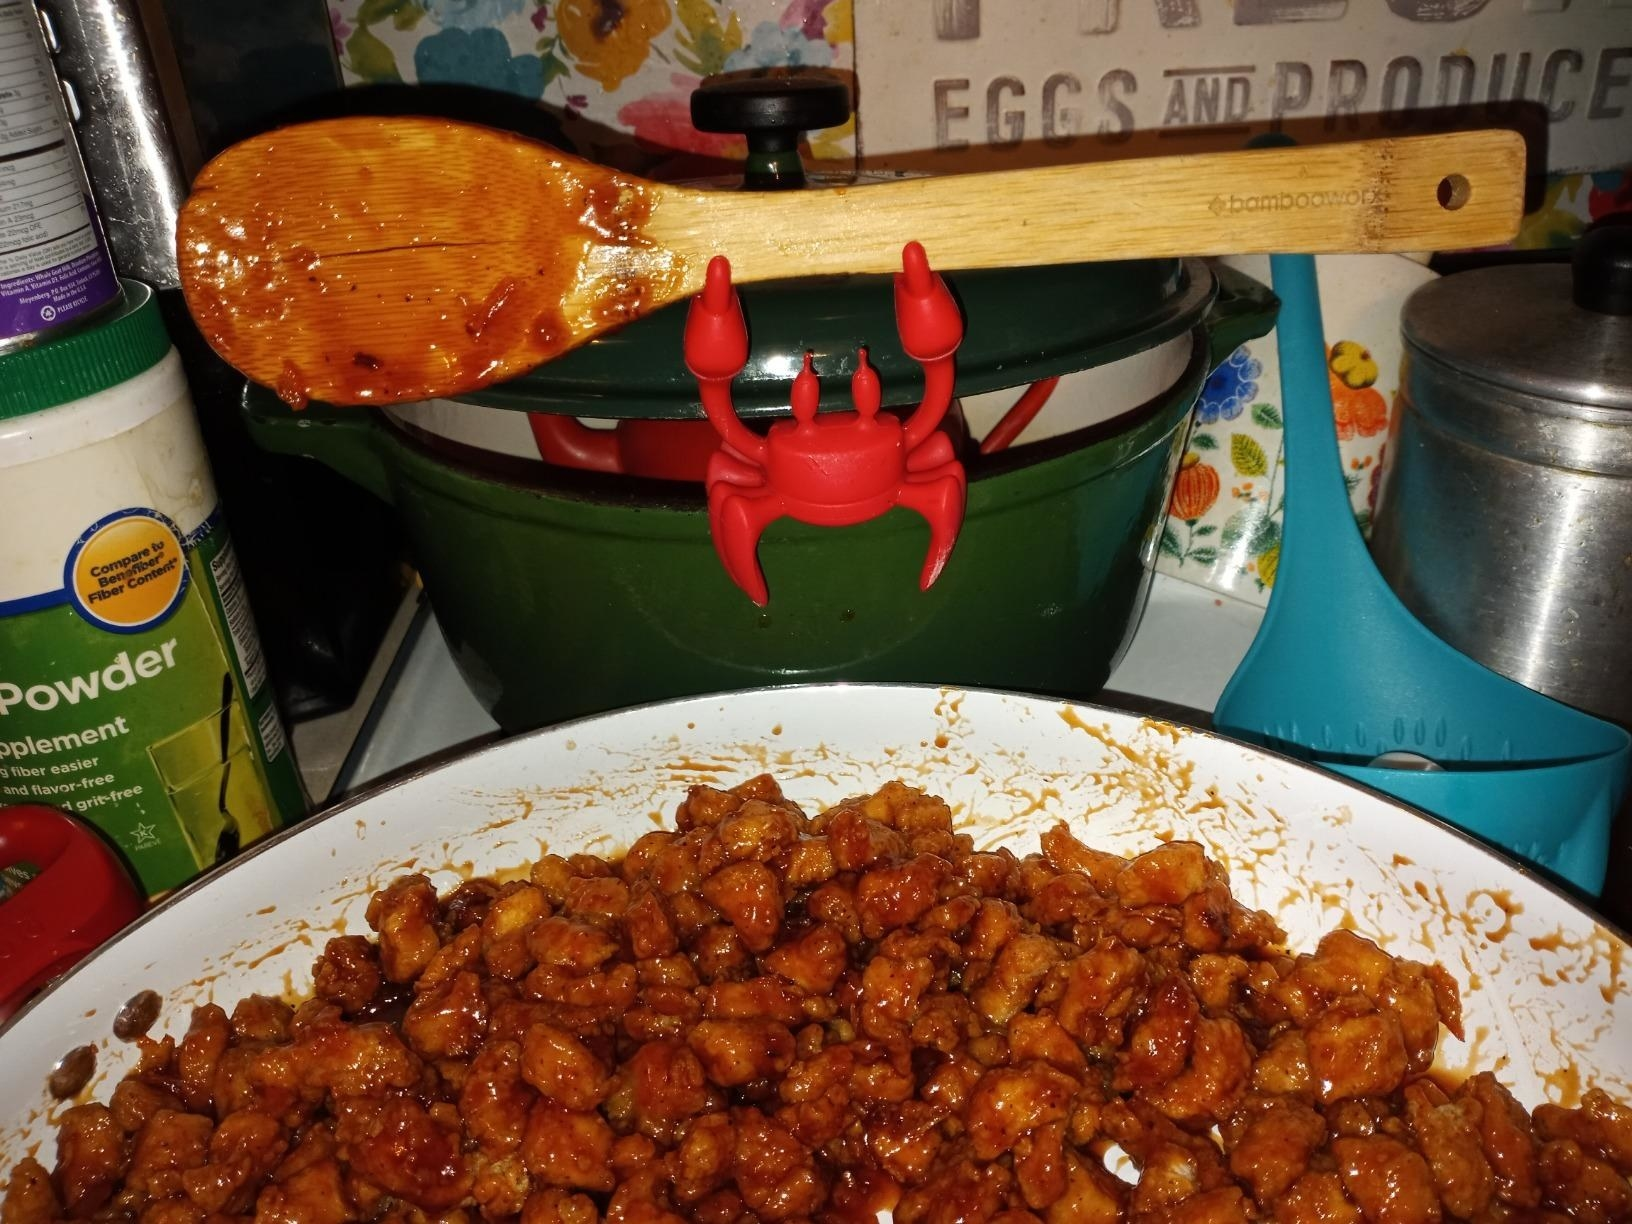 reviewer photo showing the crab spoon holder attached to a pot, holding a wooden spoon while also propping the lid open for steam